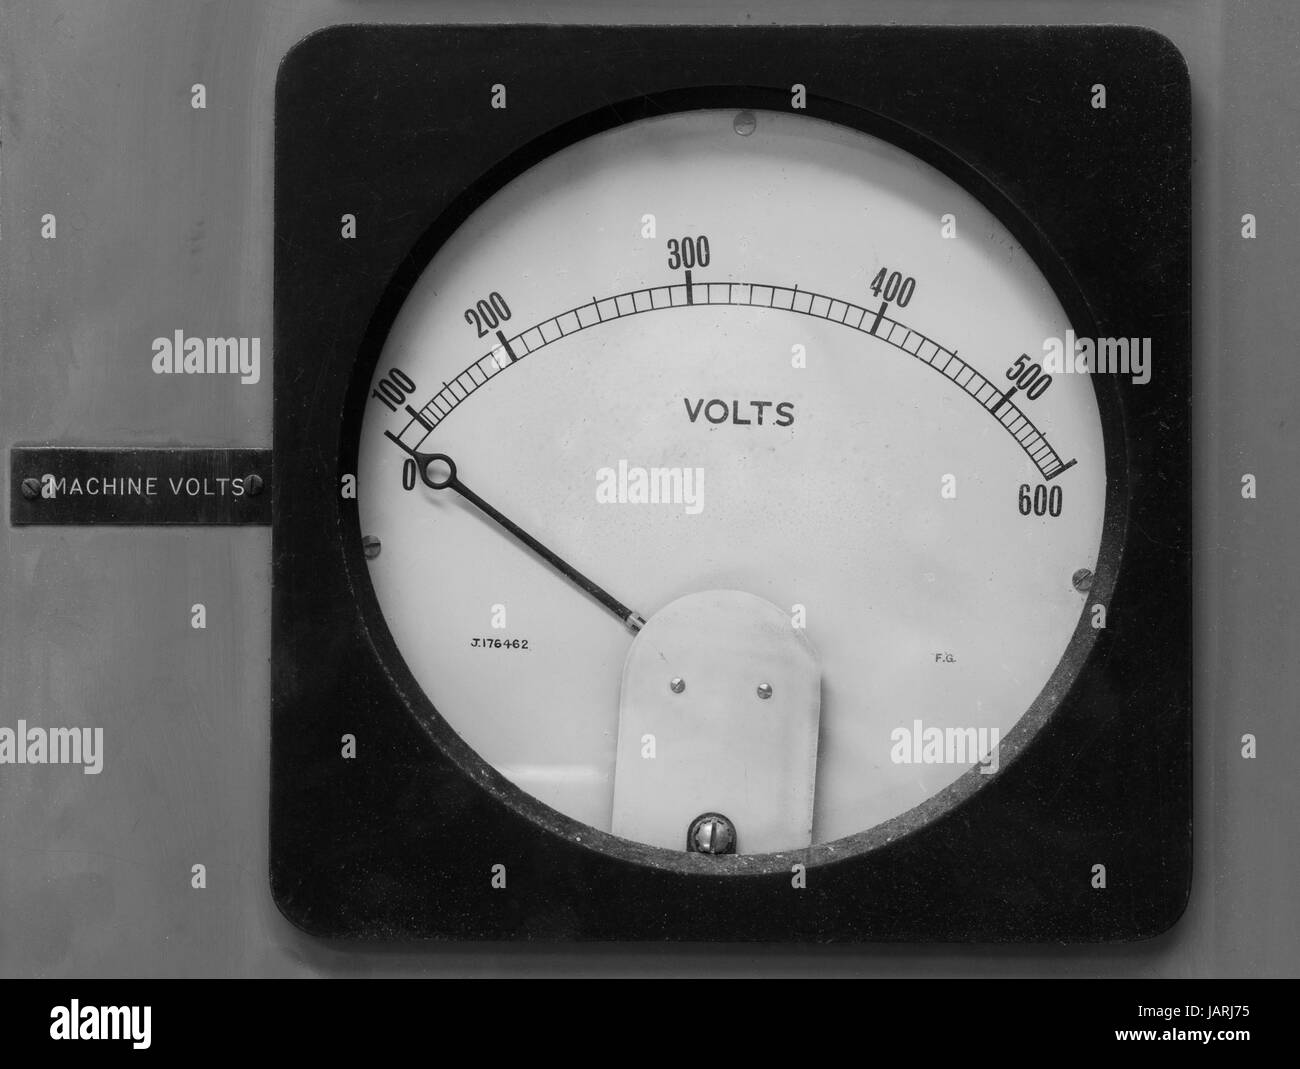 Old volt meter that goes up to 600 volts. - Stock Image